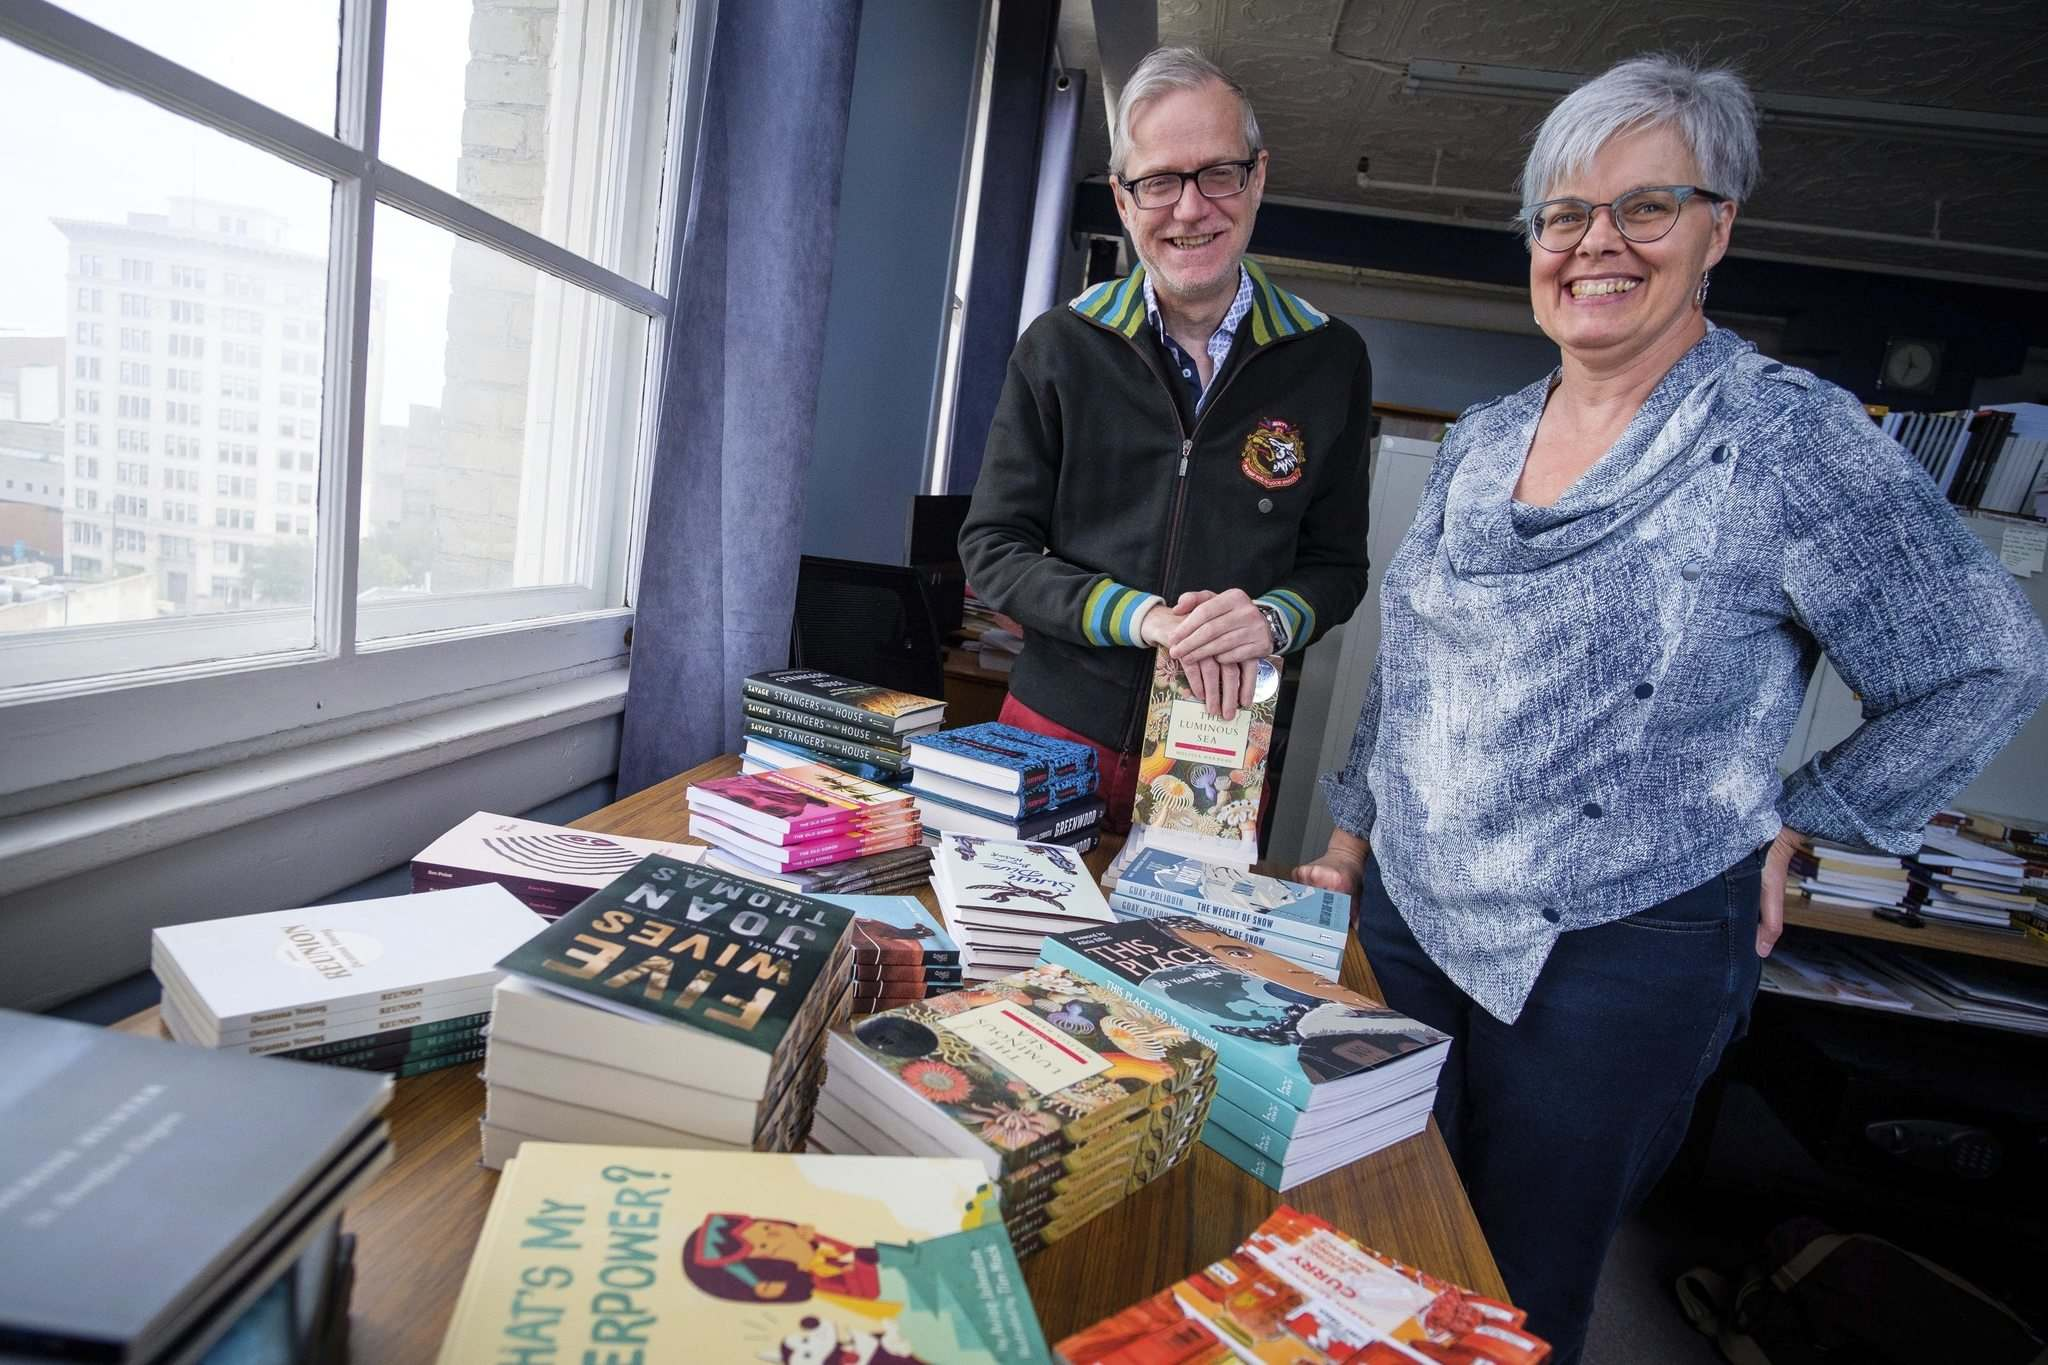 Daniel Crump / Winnipeg Free Press</p><p>Programming associate/audience development coordinator Bruce Symaka (left) and director Charlene Diehl are excited about the range of authors participating in Thin Air 2019: Winnipeg International Writers Festival, which runs from Sept. 22-30.</p>